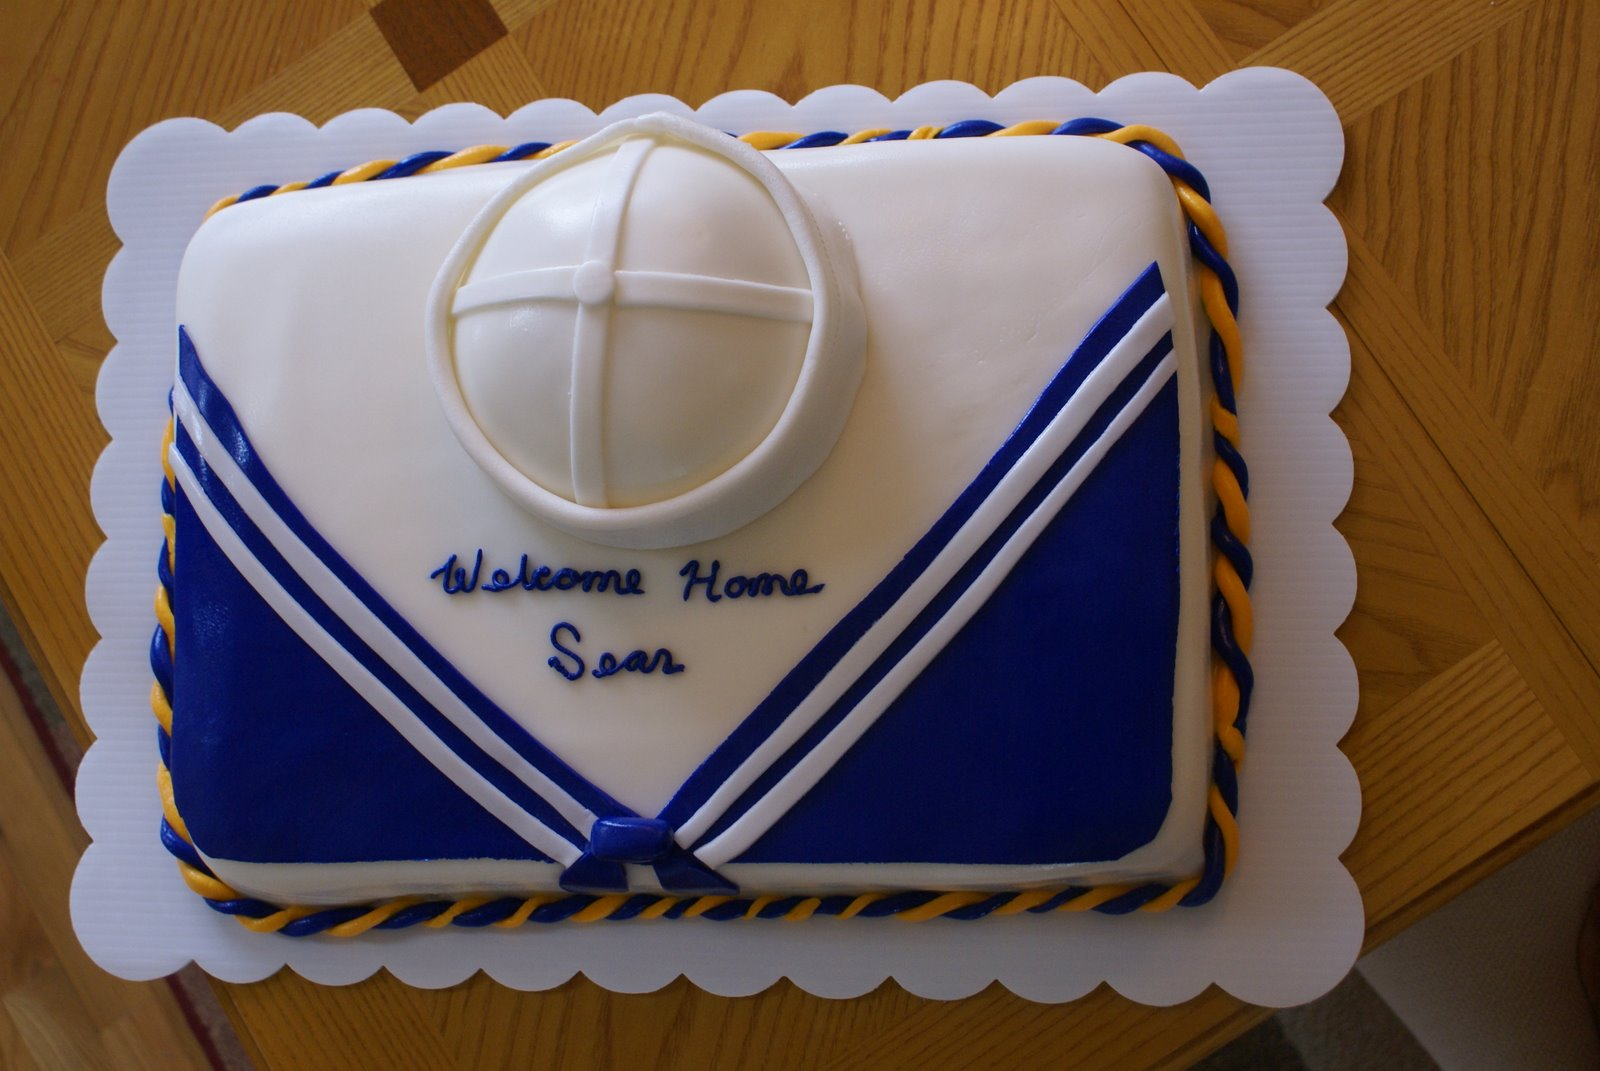 Welcome home navy cakes images - ocean water beach background picture